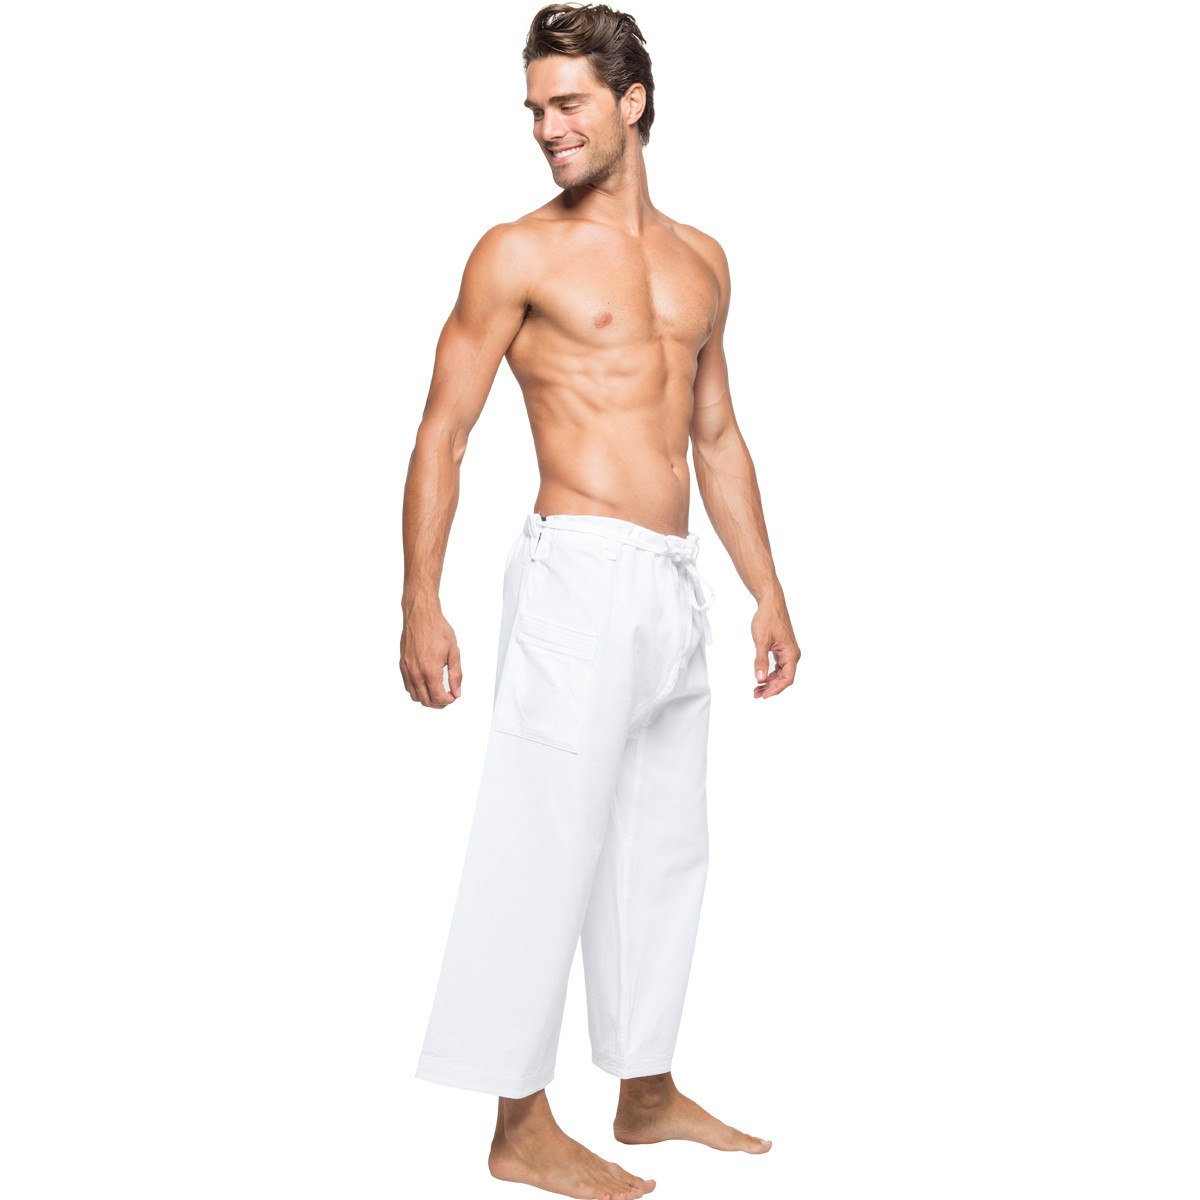 Men's Yoga Pants - Yogiiza's Organic Men's Yoga Pants